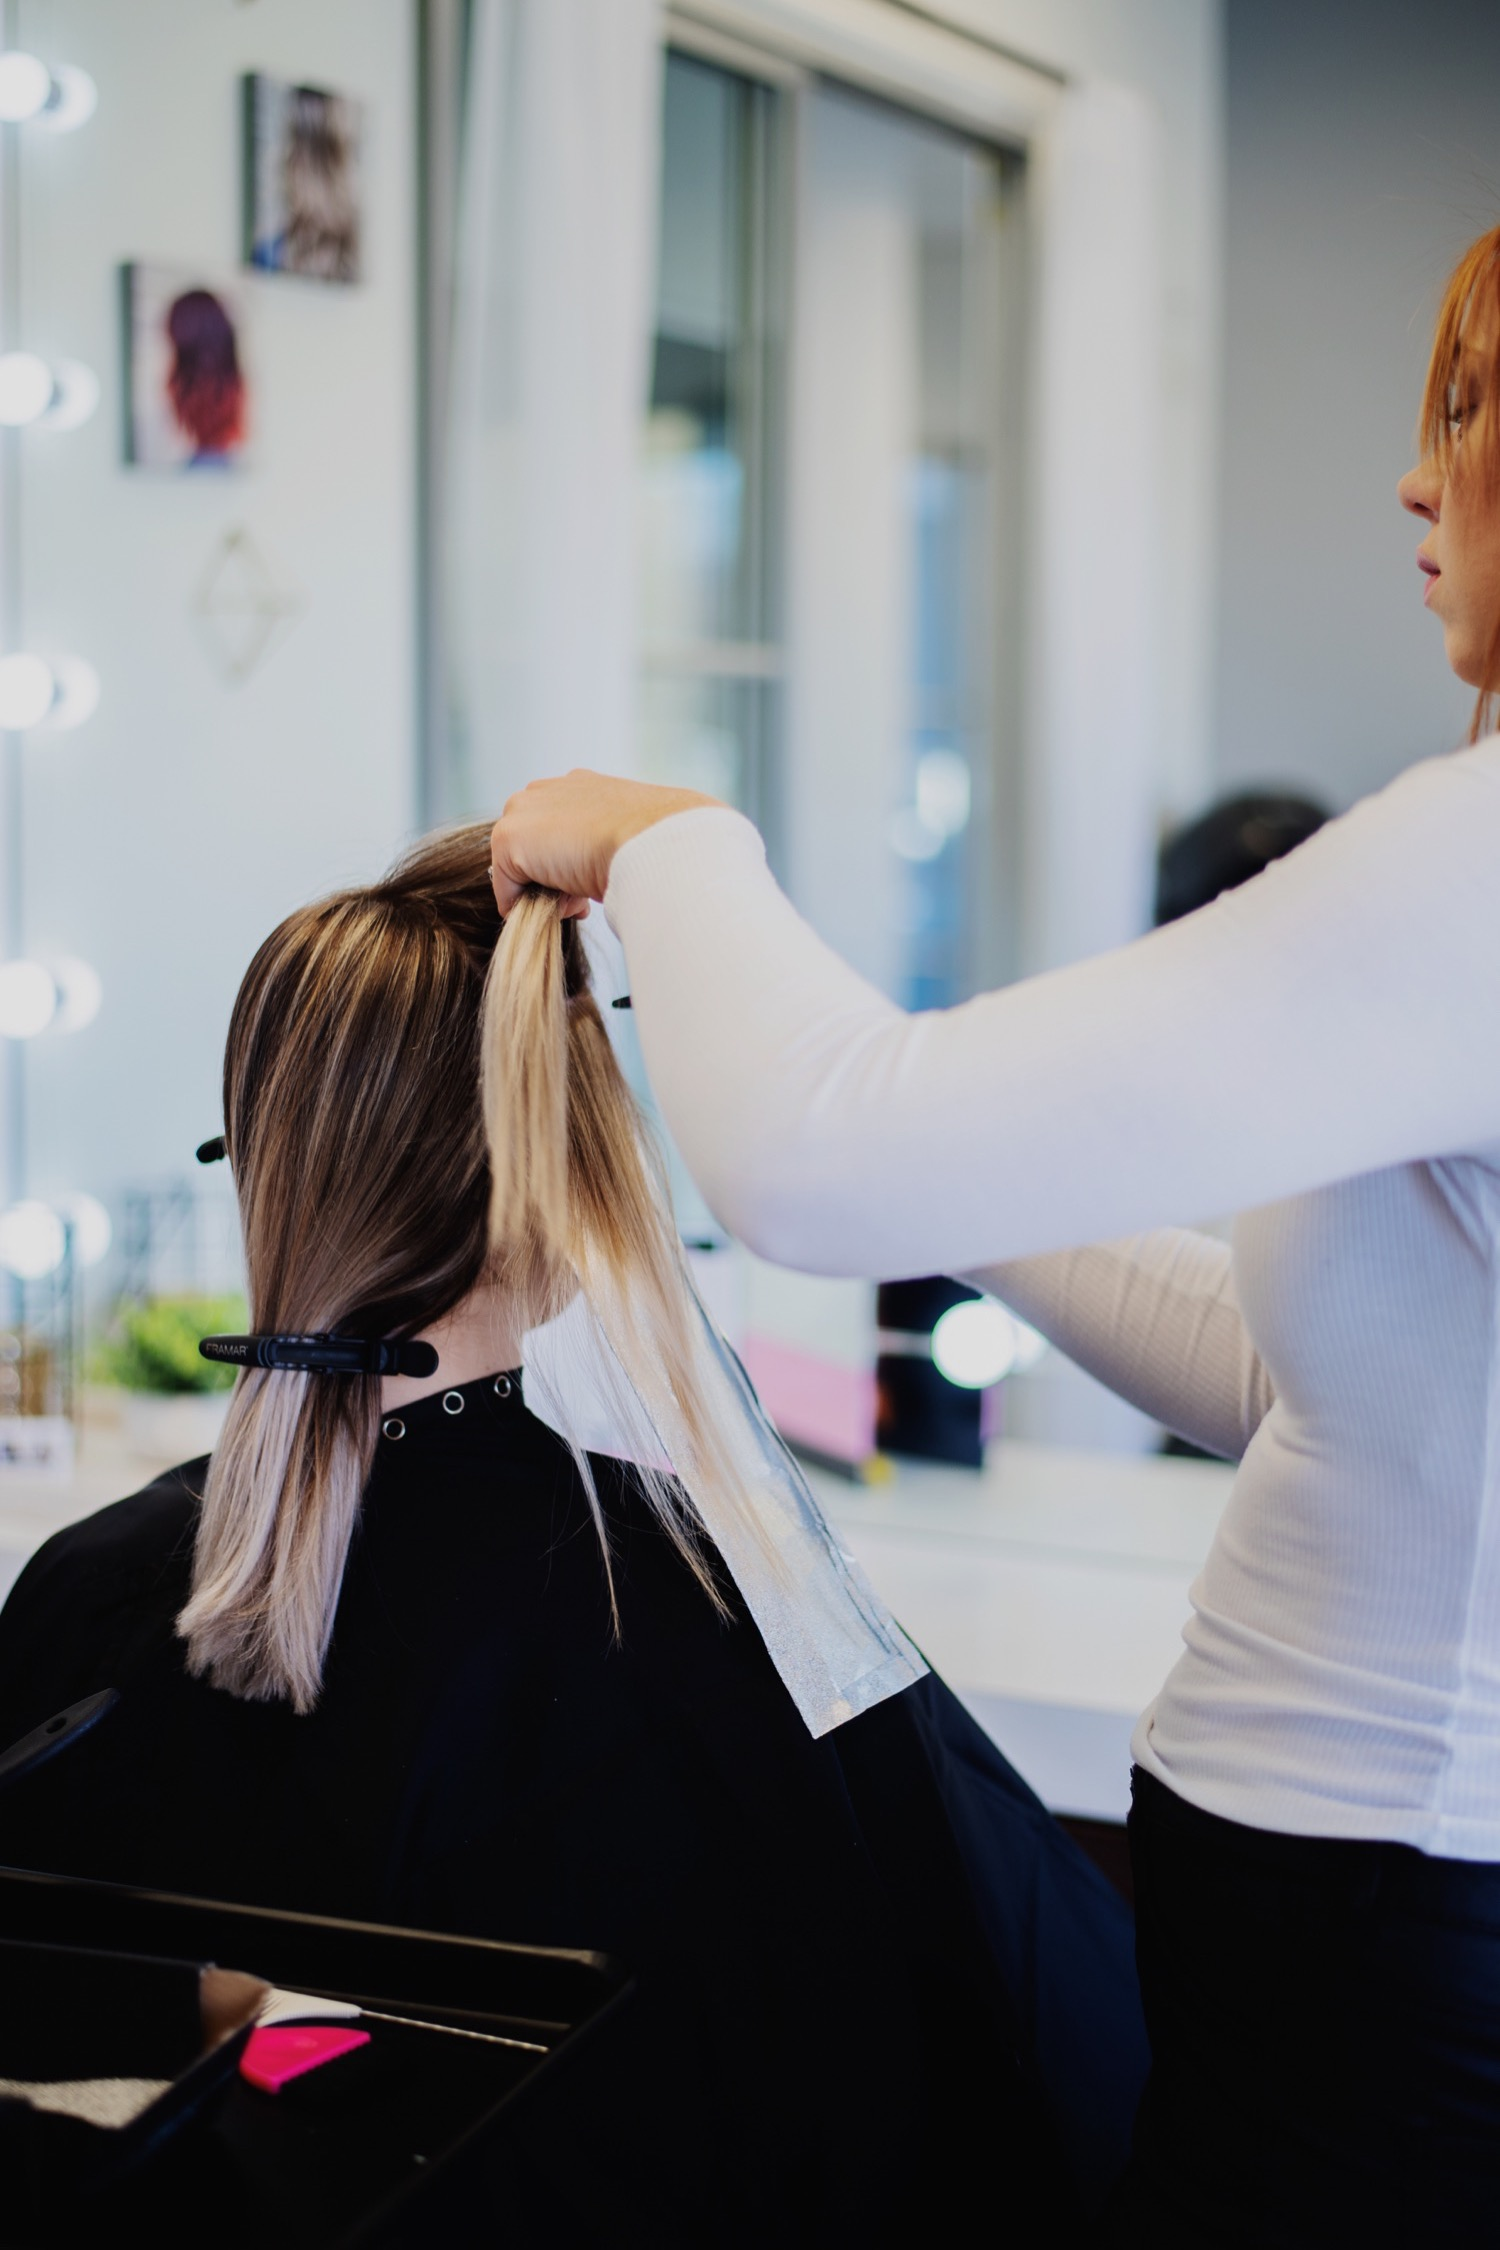 11_Laura-Salon-OakbrookTerrace_0162_oakbrookterrace_hairstylist_oakbrookterracesalon_salon.jpg